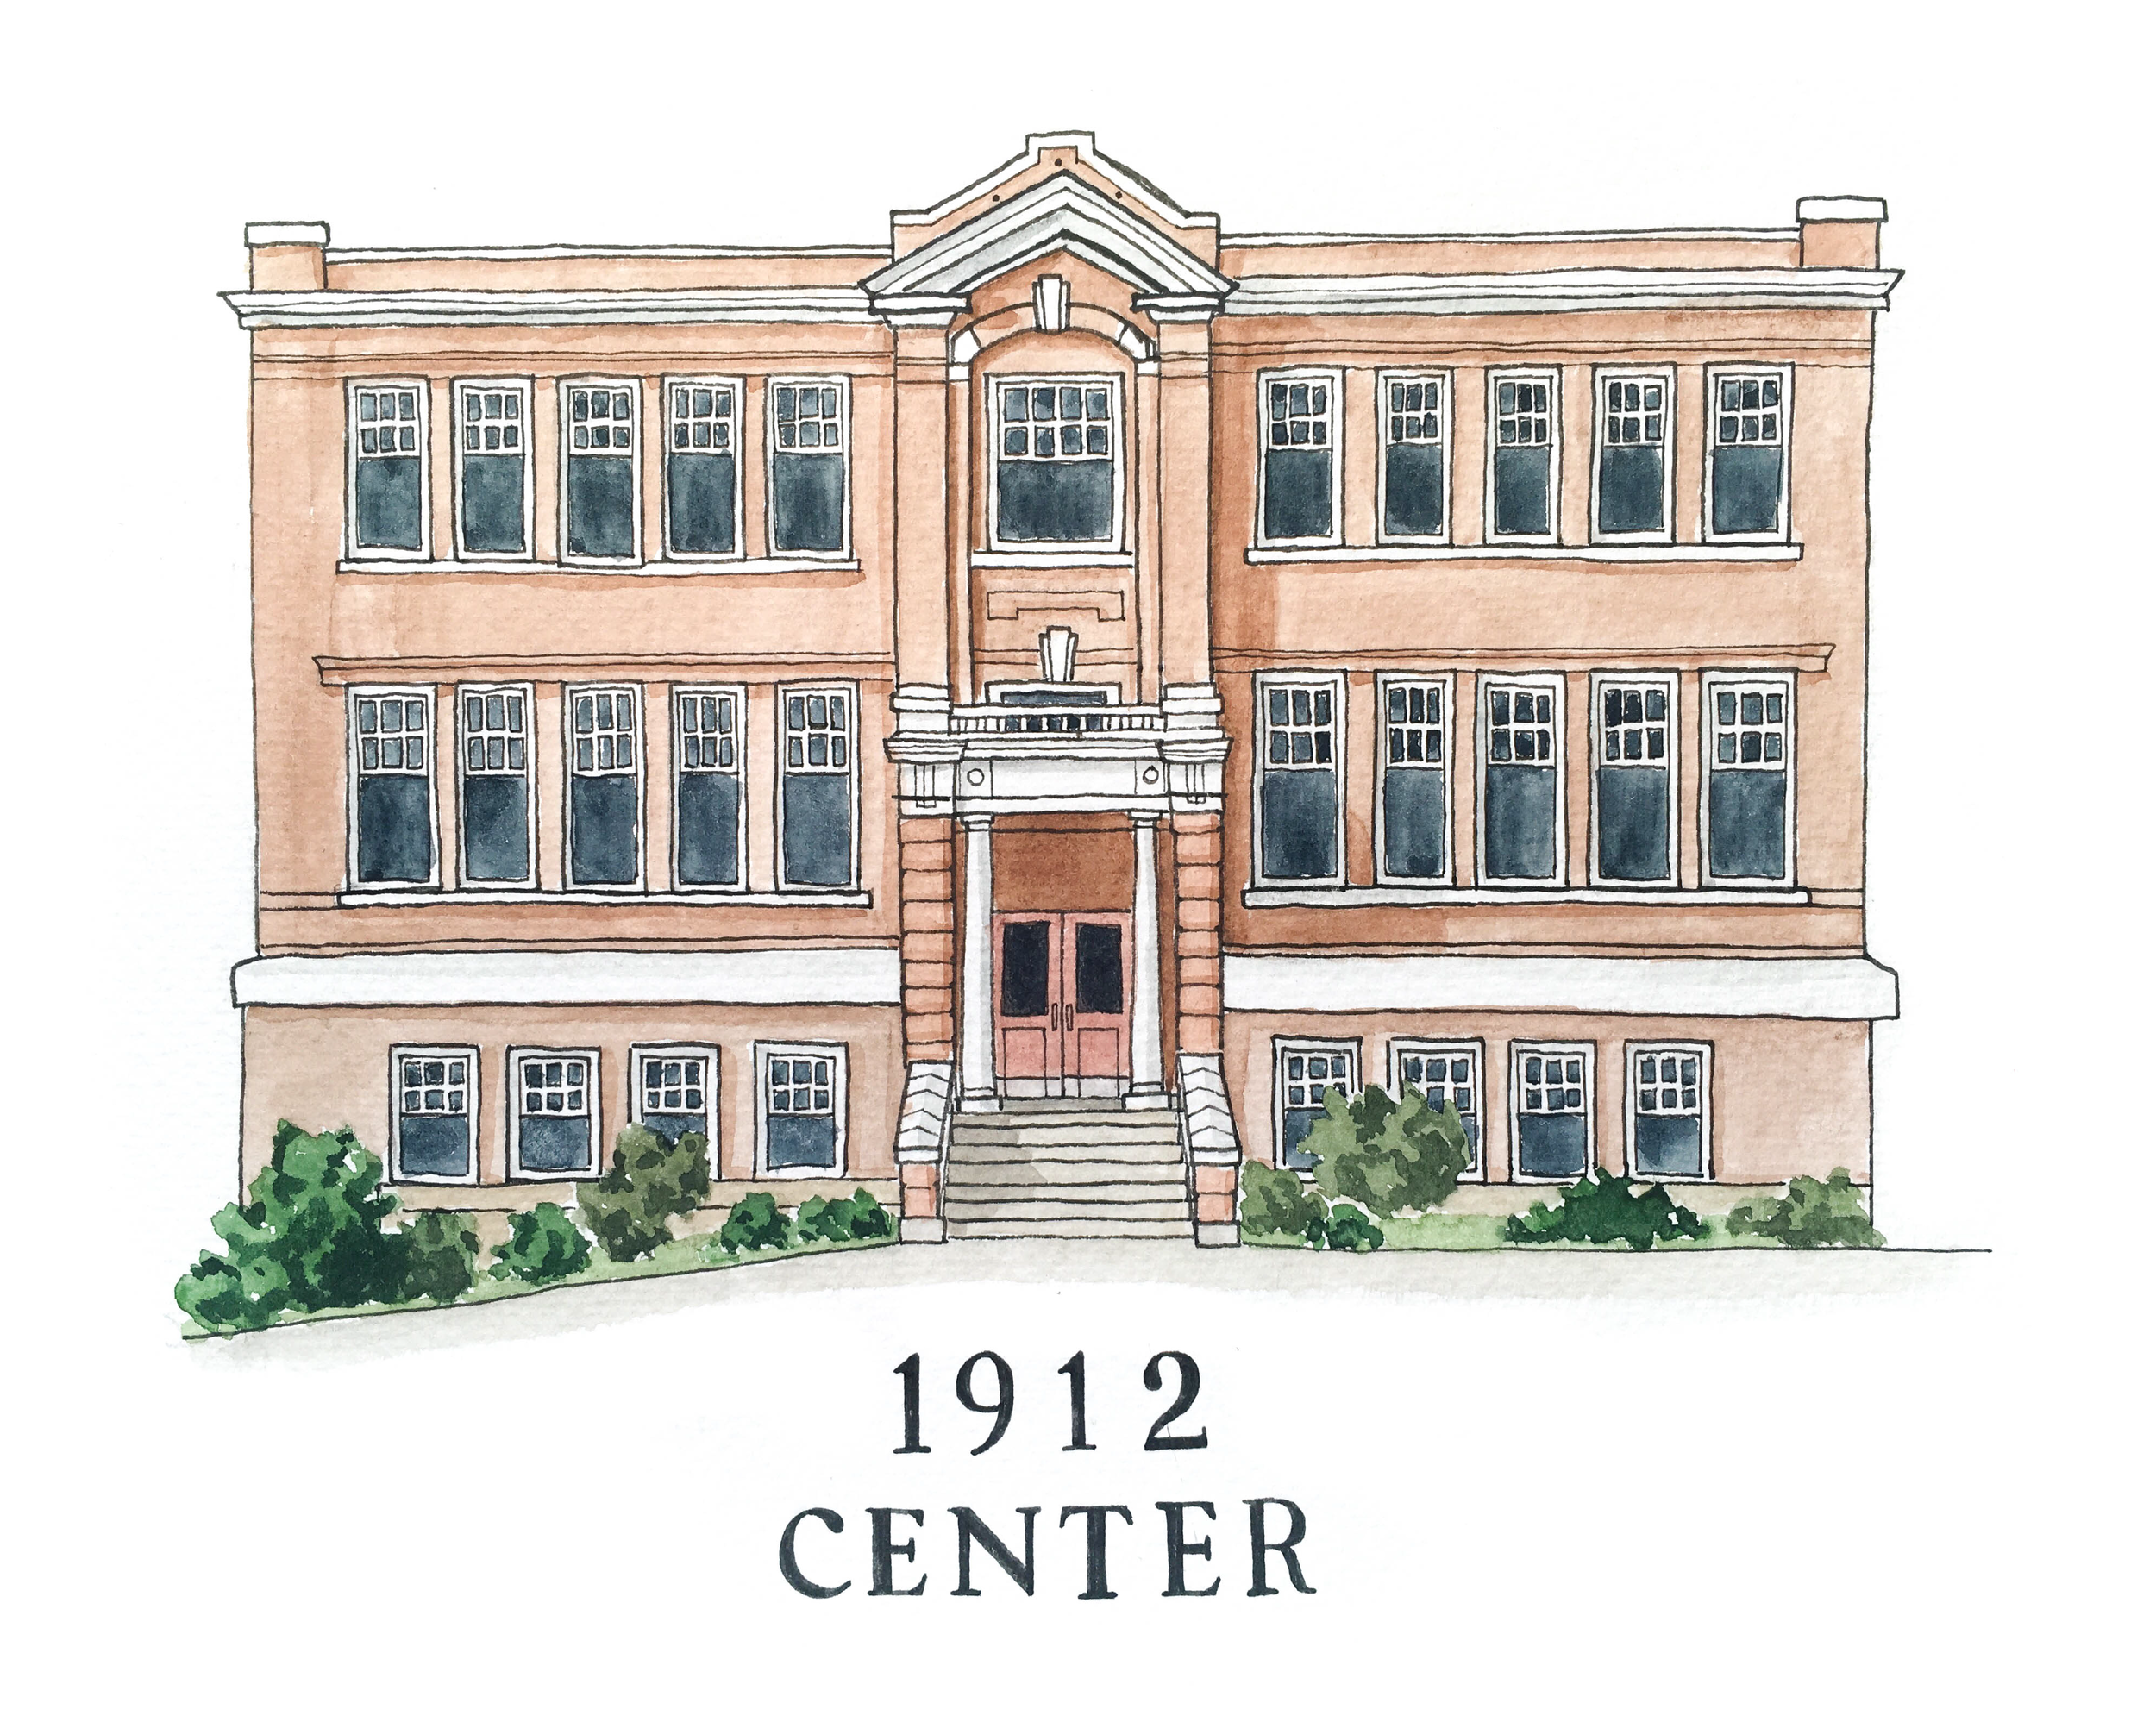 1912 center-01.png